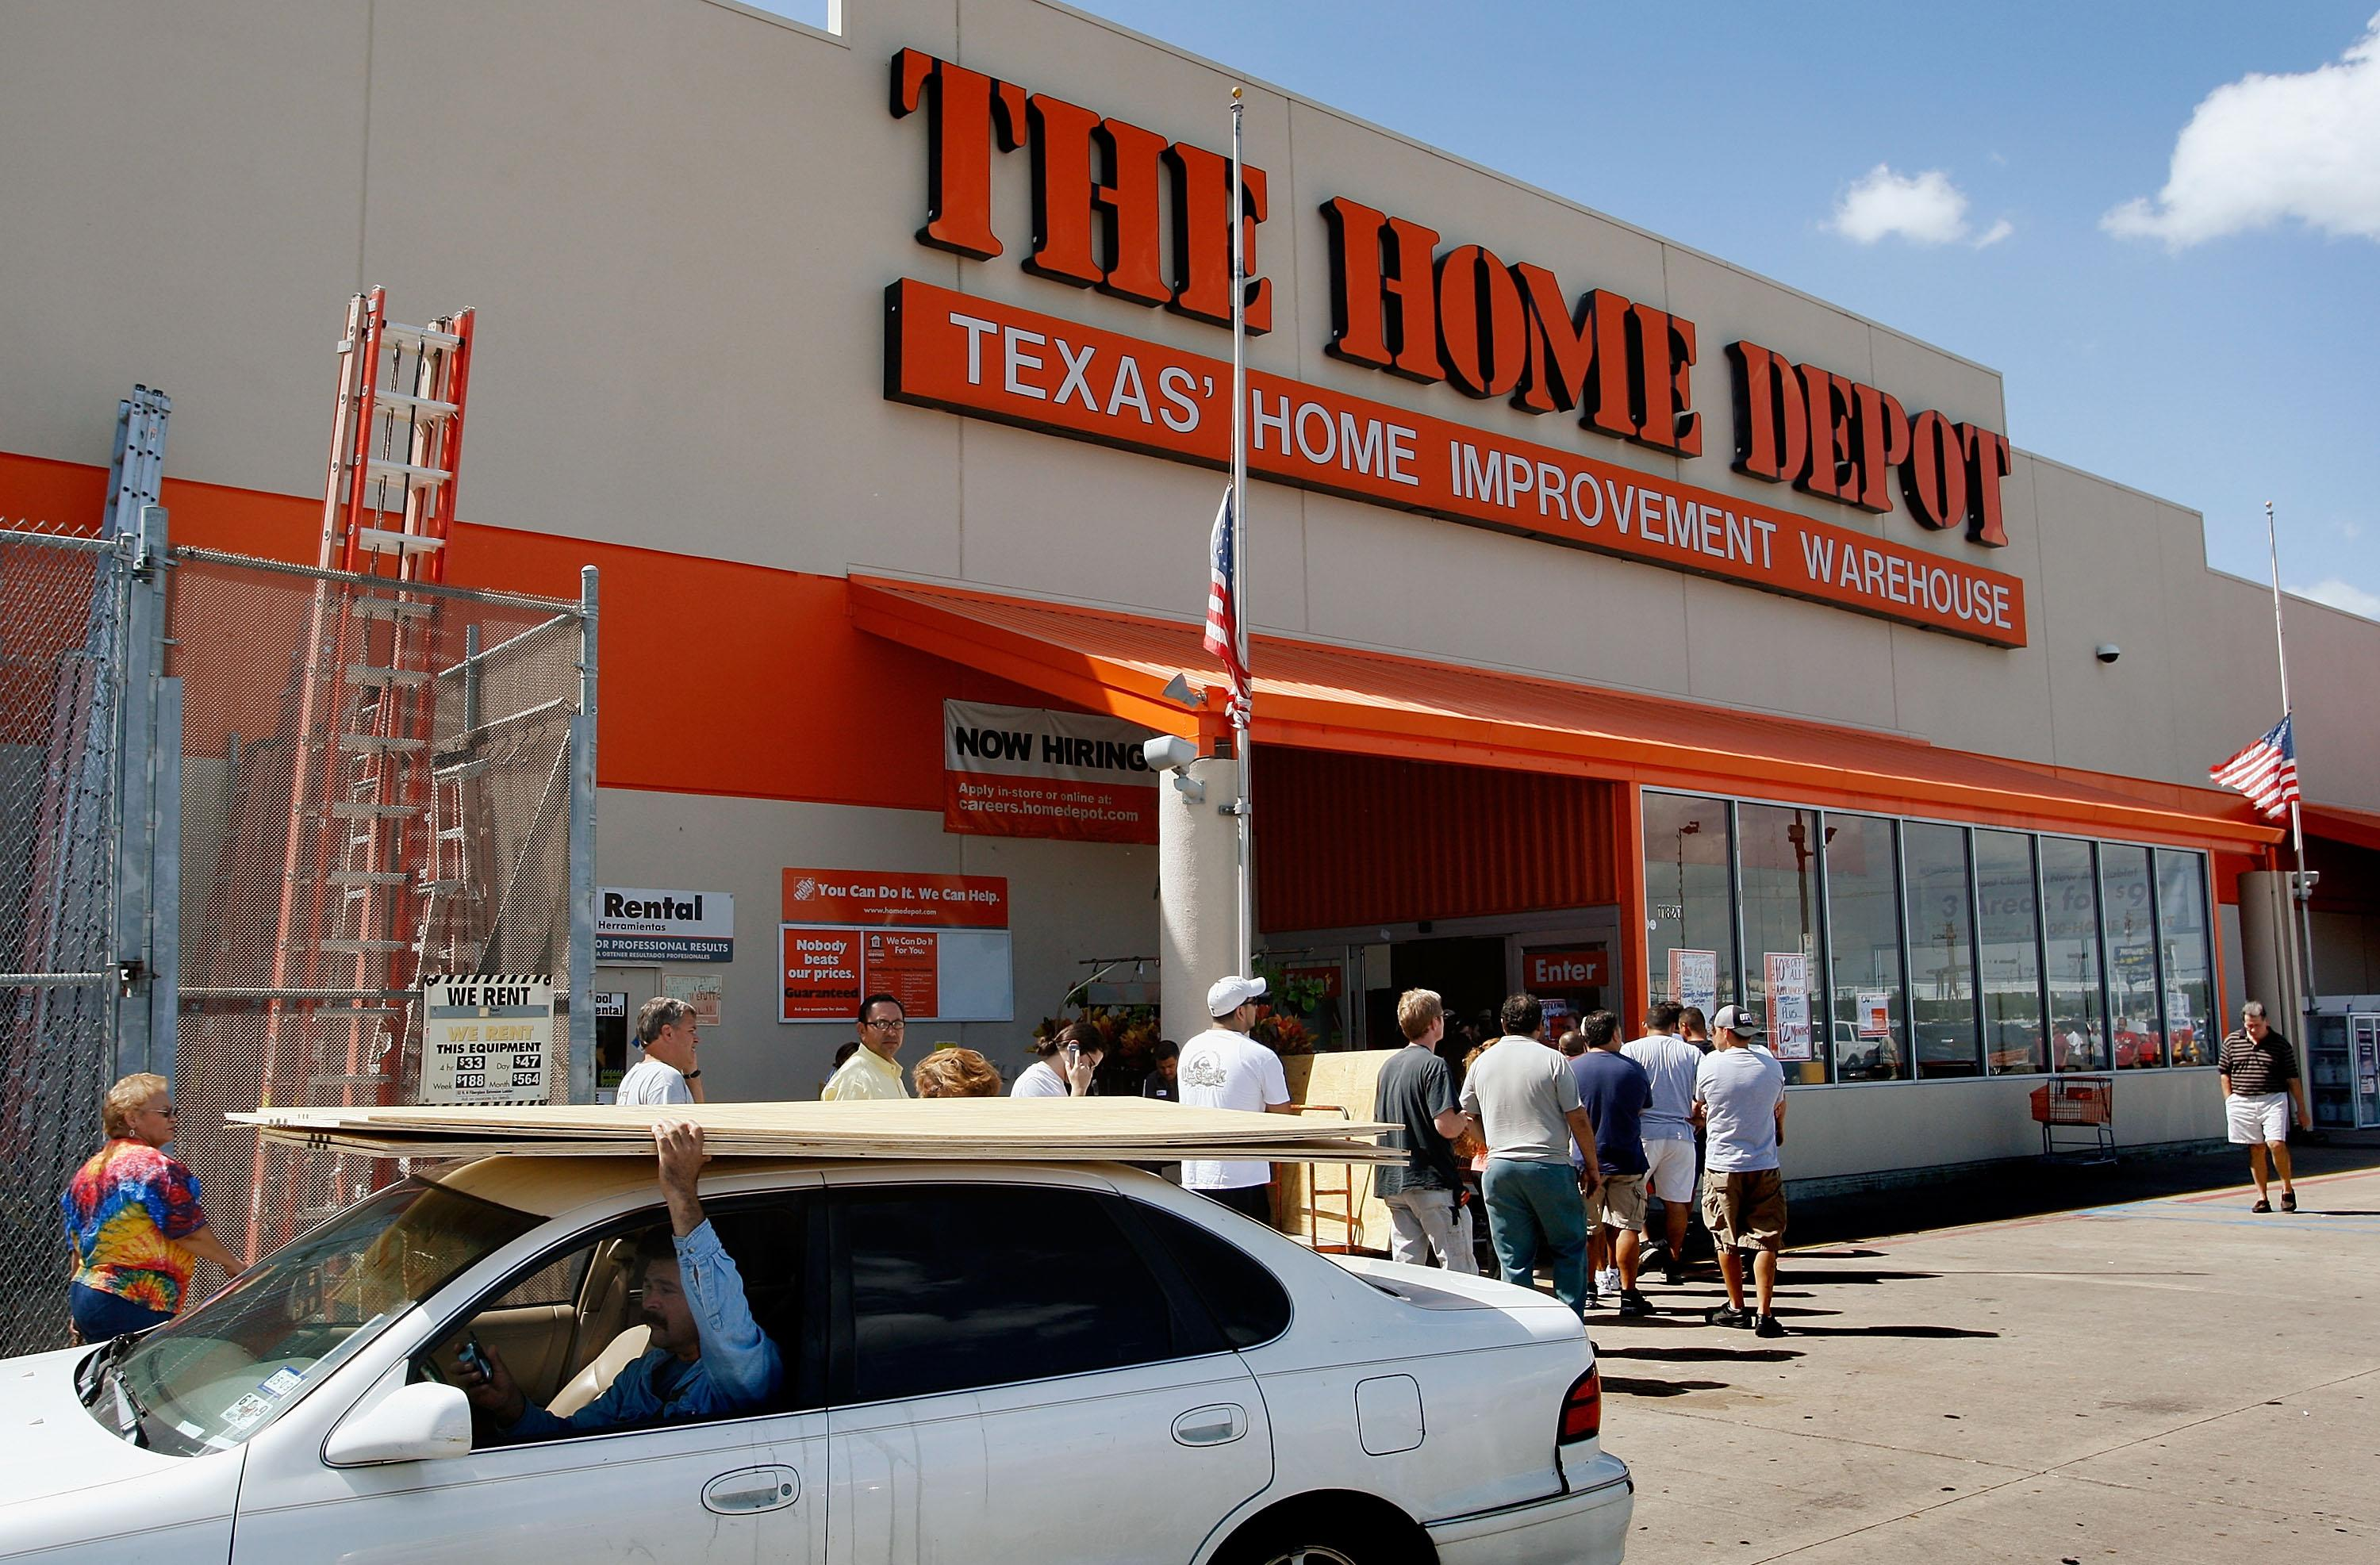 Home Depot, Kohl's earnings — What to know in markets Tuesday